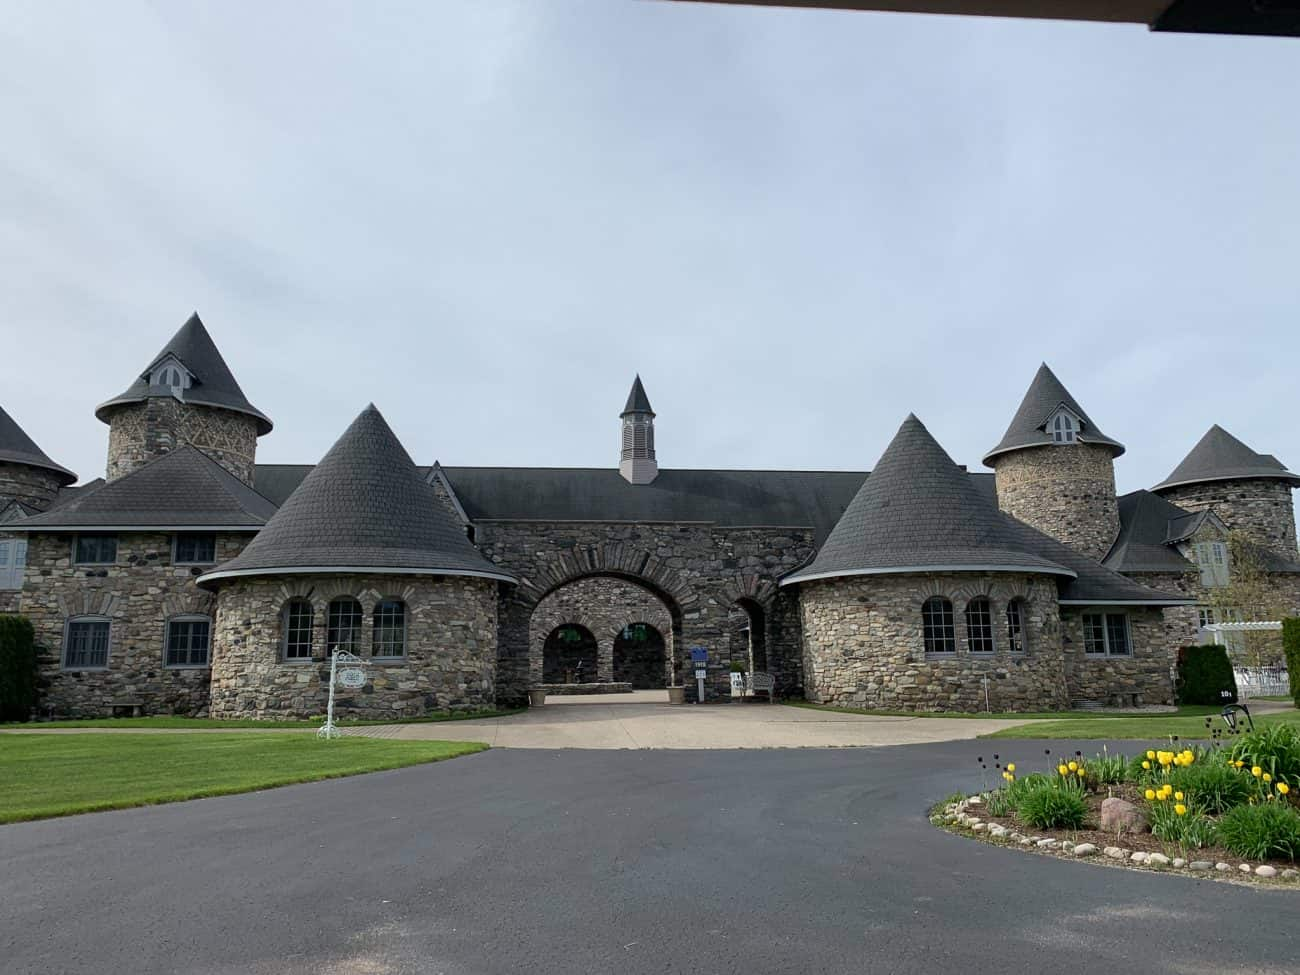 Castle Farms from the Road